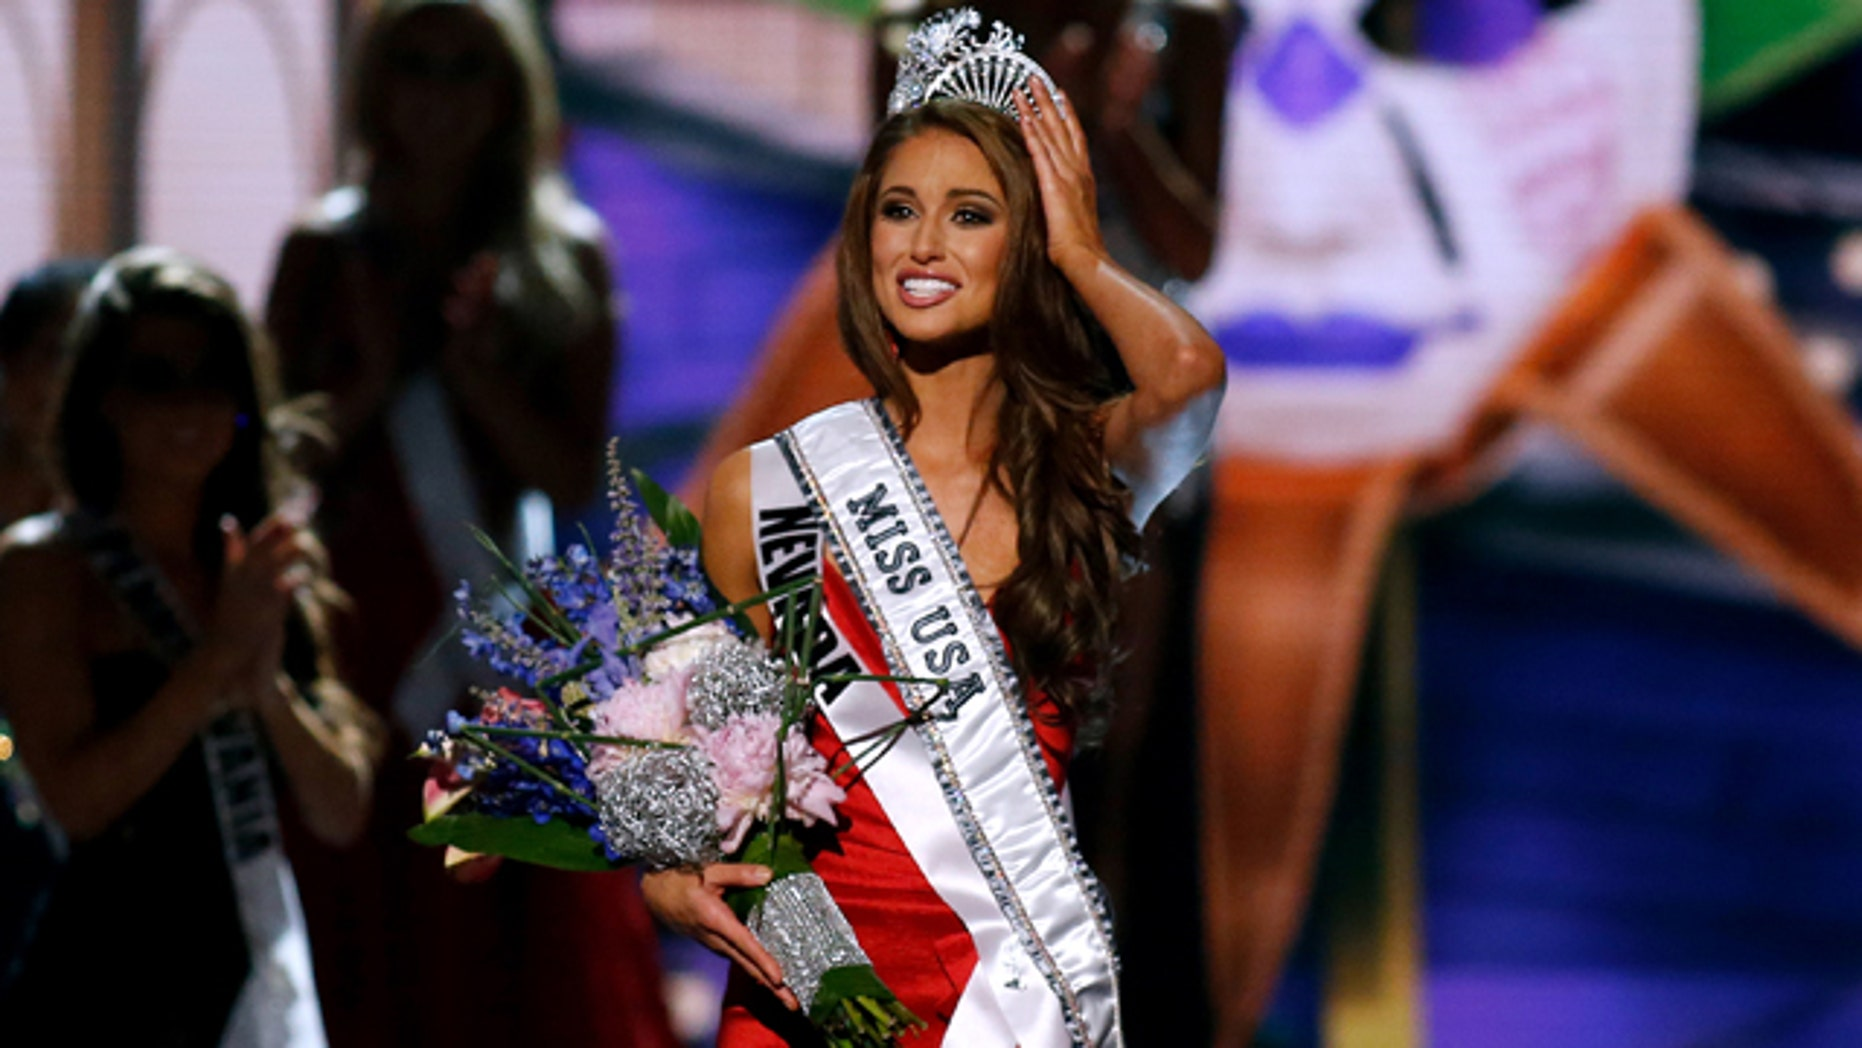 Miss Nevada USA Nia Sanchez after being crowned the new Miss USA, on June 8, 2014.